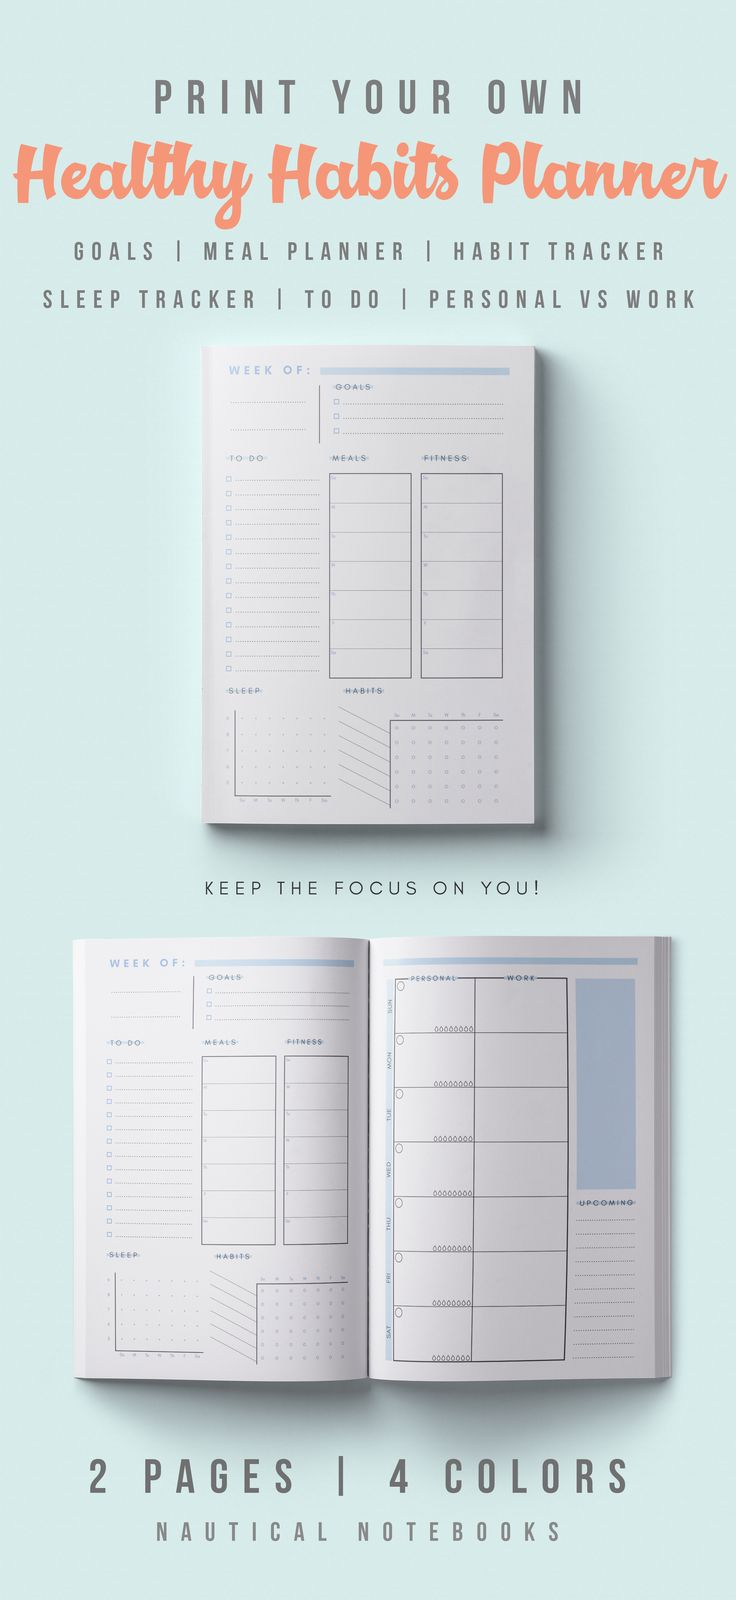 If you're looking to focus on your wellness, and you're too lazy for bullet journals, then this is perfect for you! A healthy habits planner for tracking goals, habits, sleep, meals, exercise, and work vs personal time. Make sure you take care of YOU. #fitnessmotivation #healthyliving #healthylife #wellness